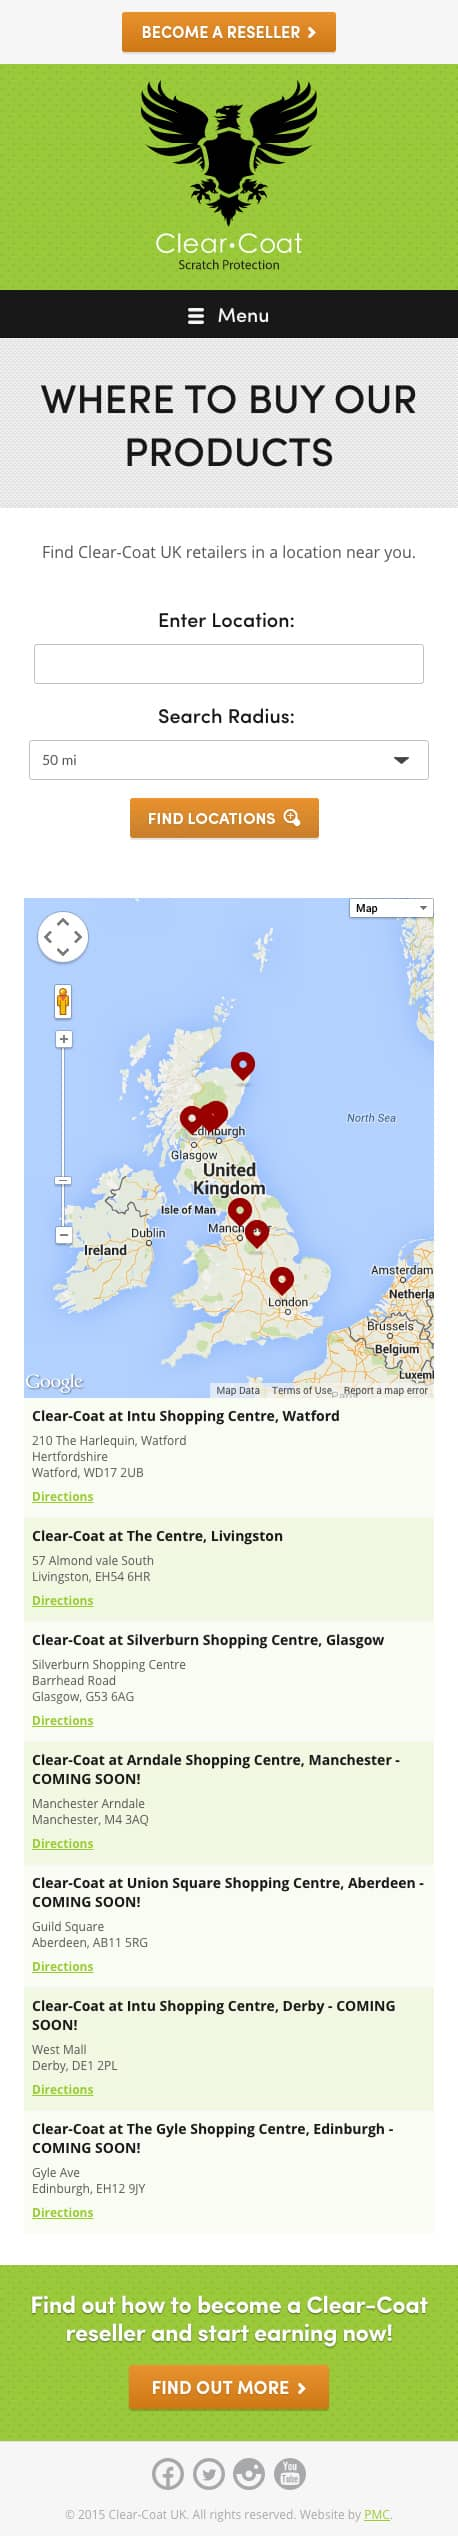 Clear-Coat UK Locations